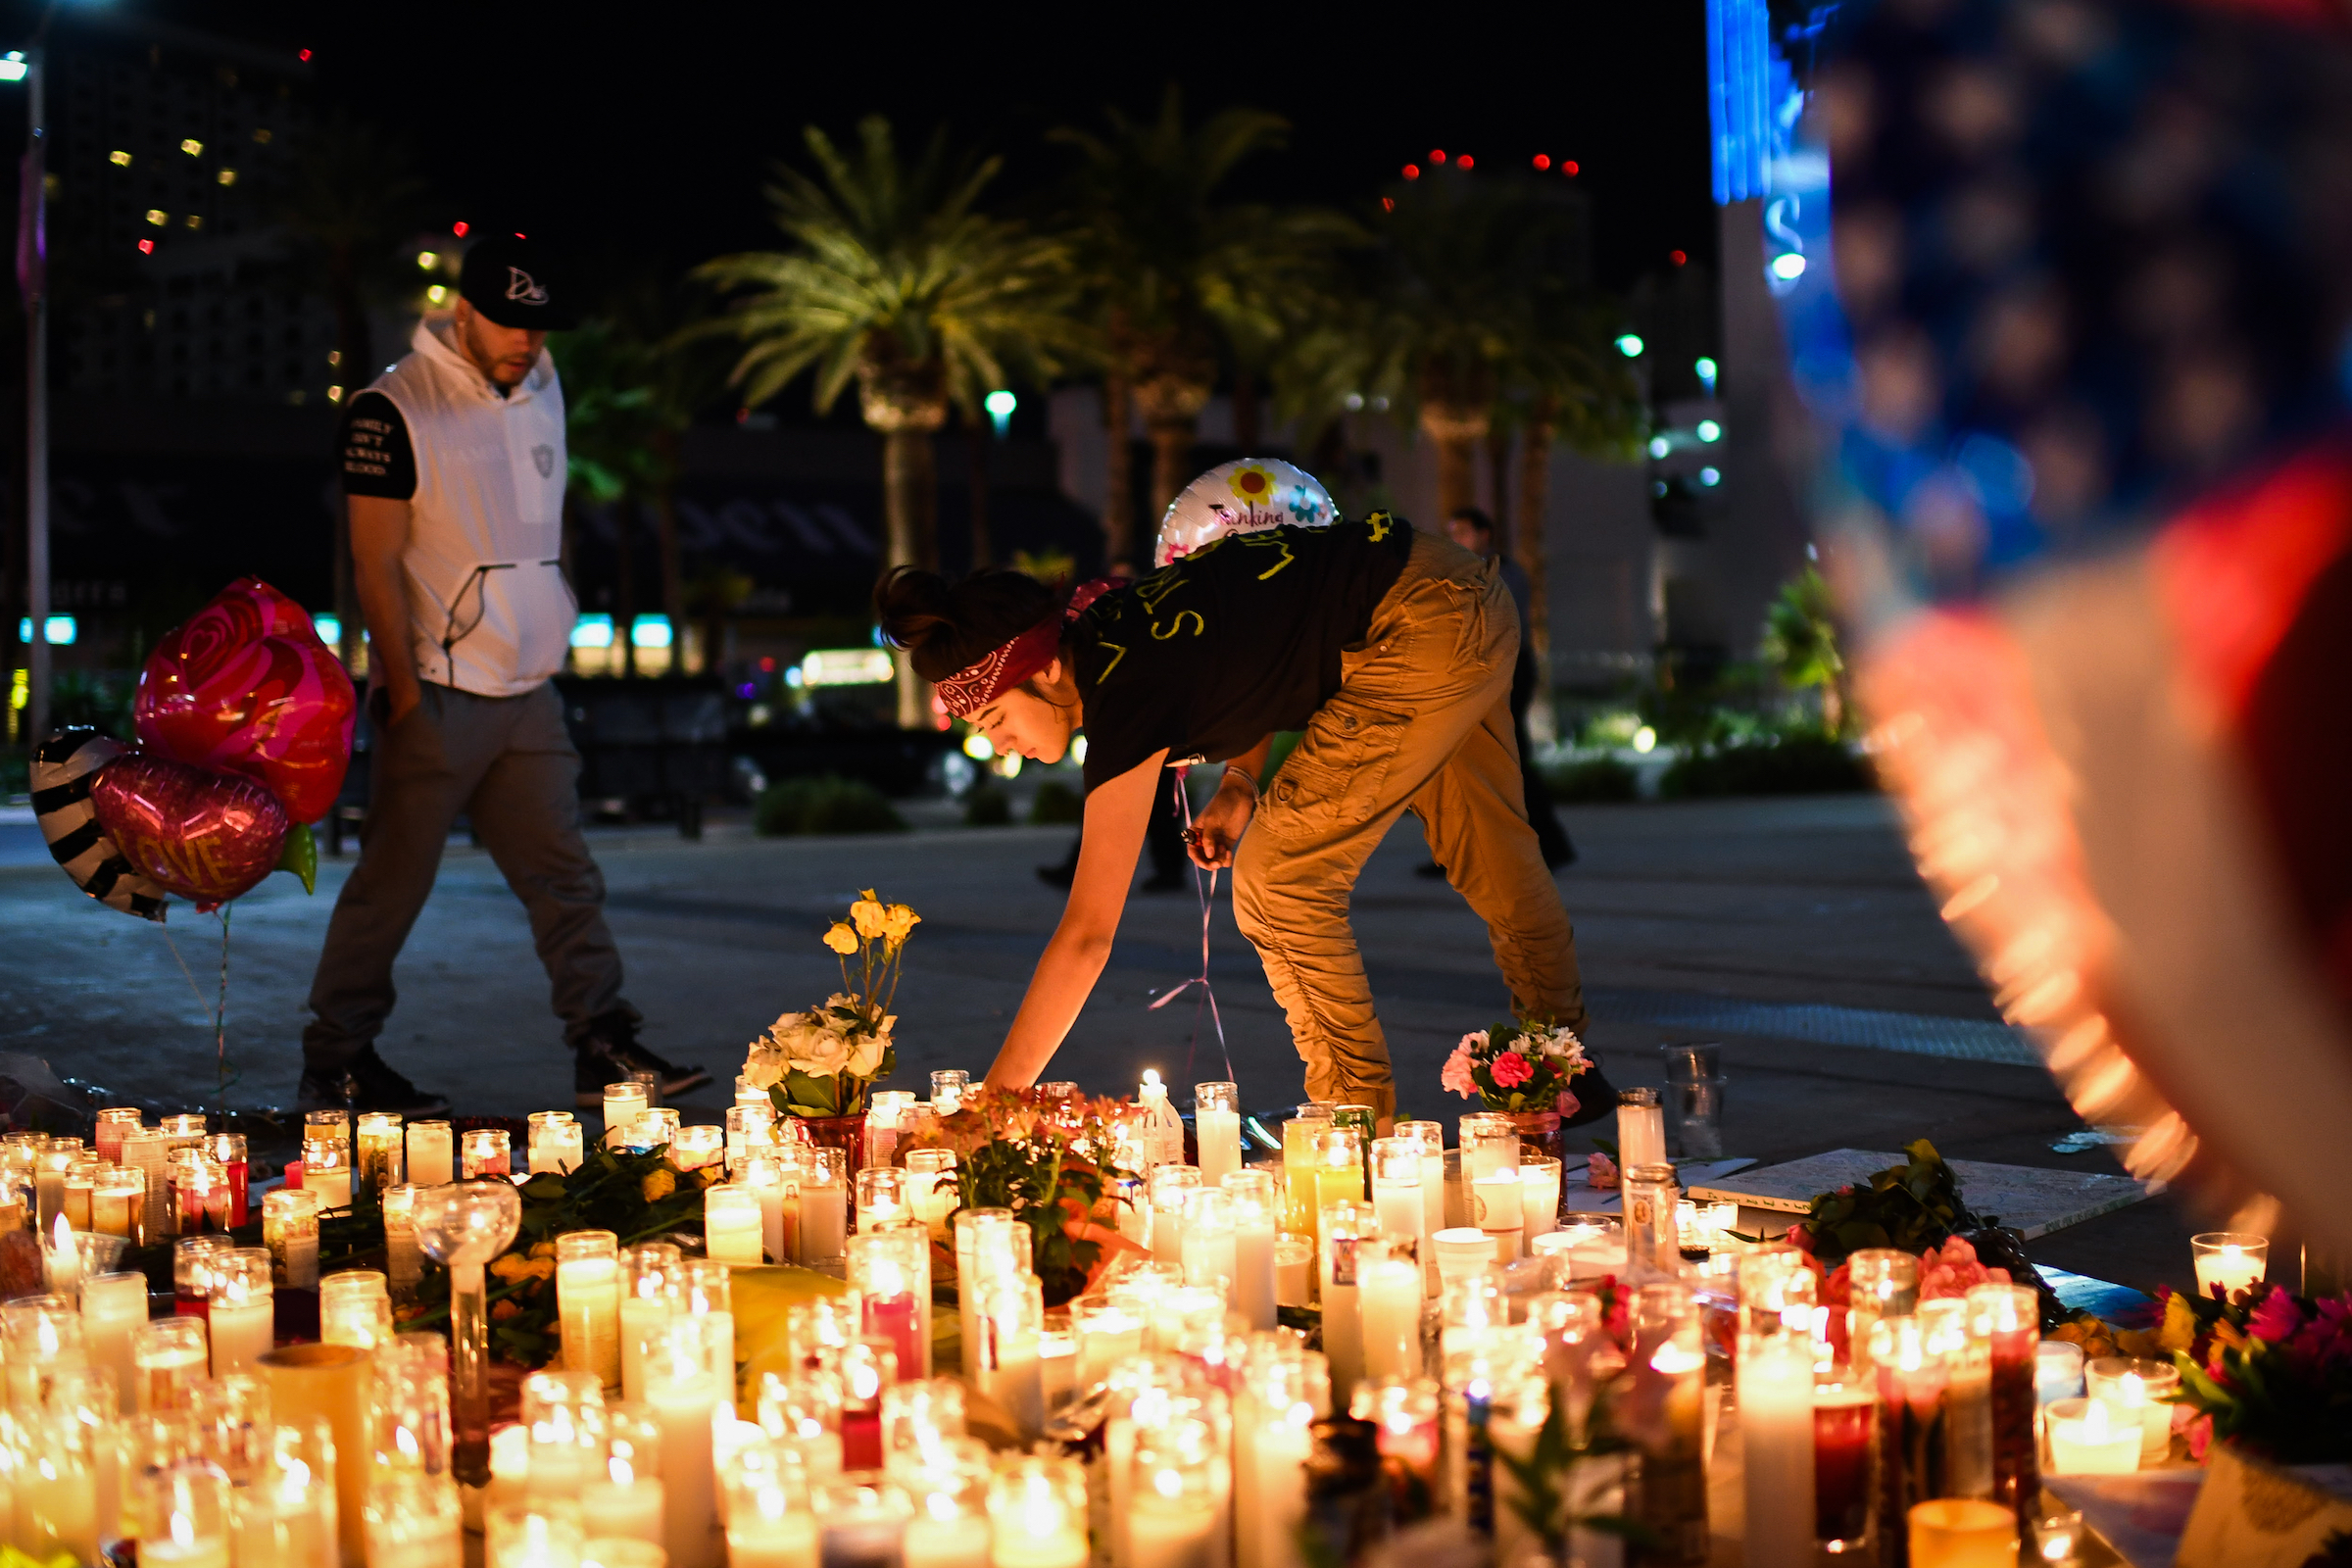 Priscilla Olivas, 19, of Las Vegas, NV, lights up a candle at a street vigil that was held for the victims along the Las Vegas Strip a day after 59 people were killed and more than 500 wounded at the Route 91 Harvest Country Music Festival on Monday, October 2, 2017, in Las Vegas, NV.